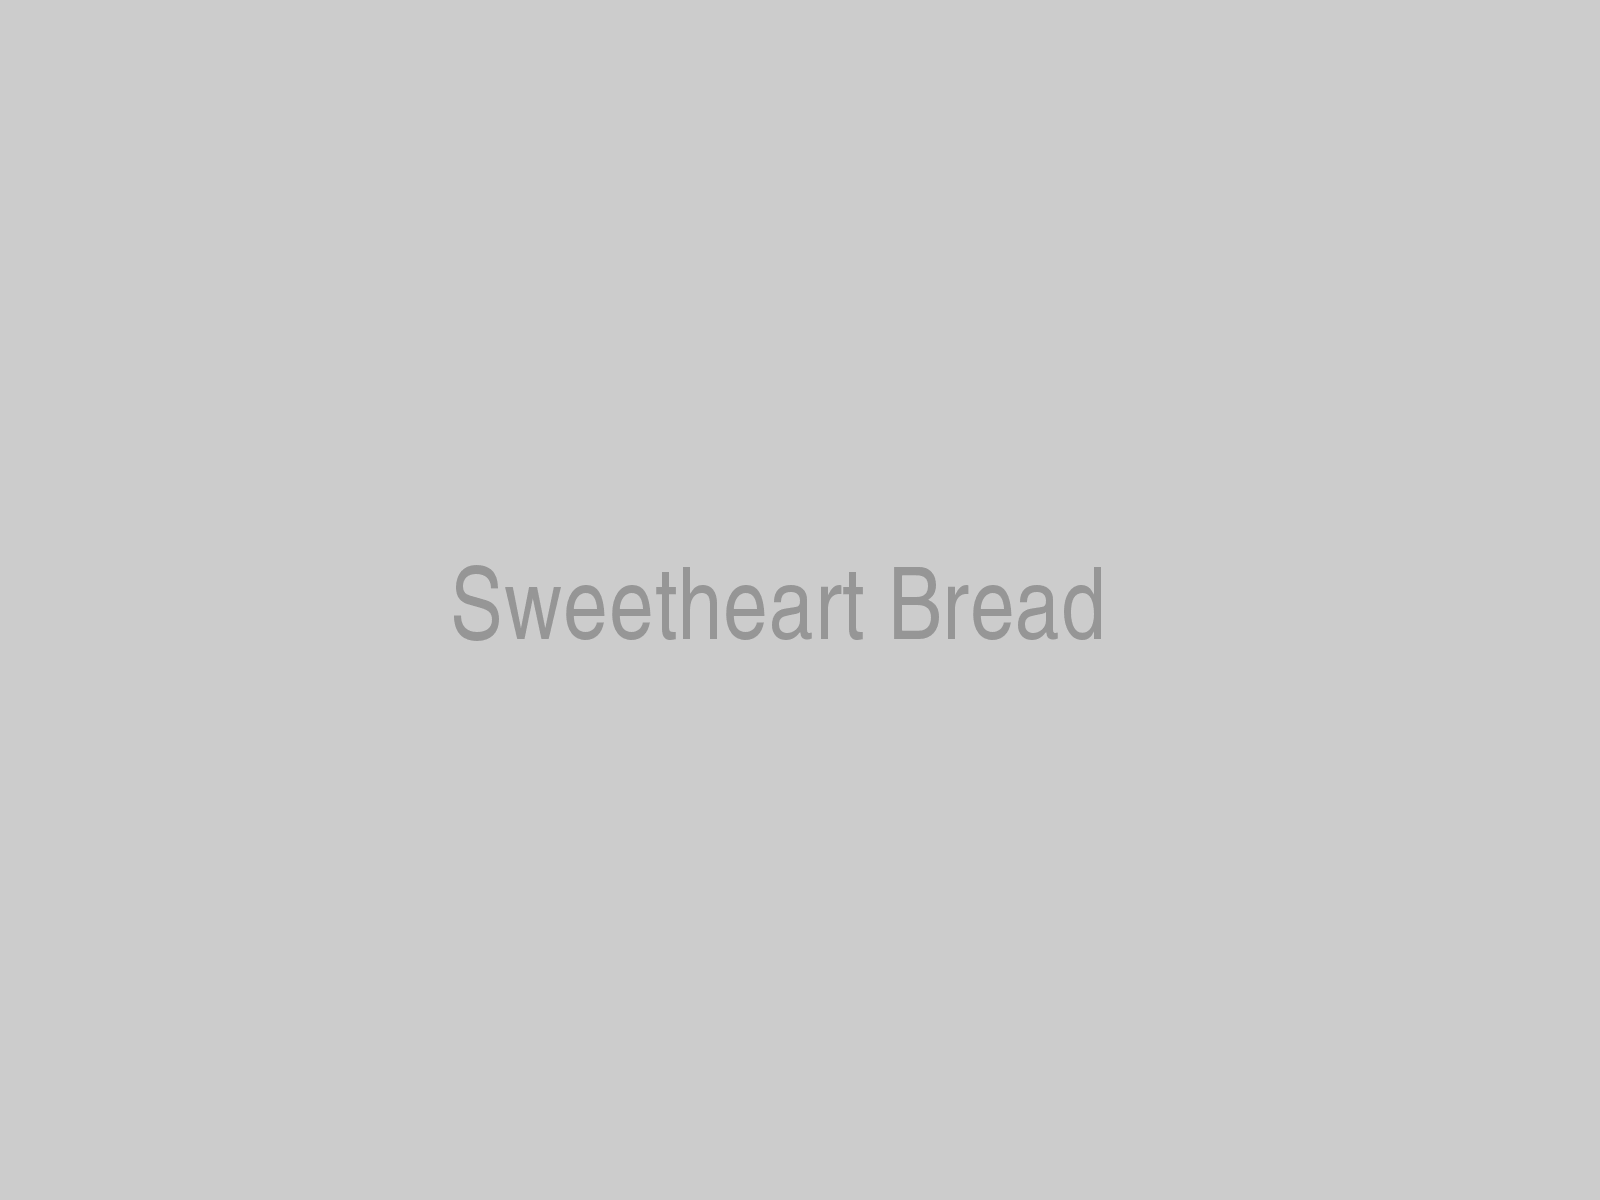 Sweetheart Bread